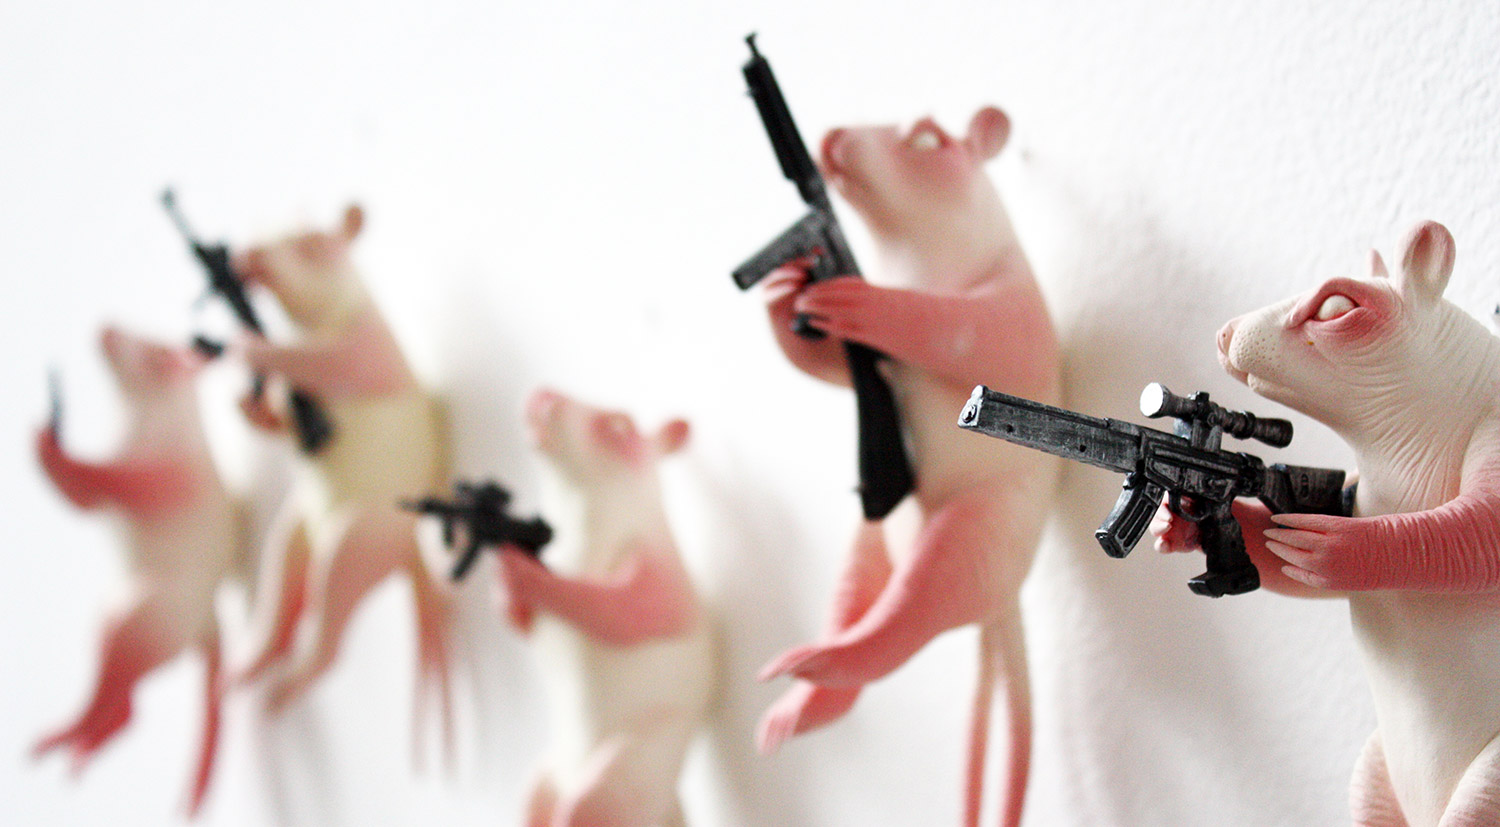 Erika Sanada - rodents with machine guns on wall